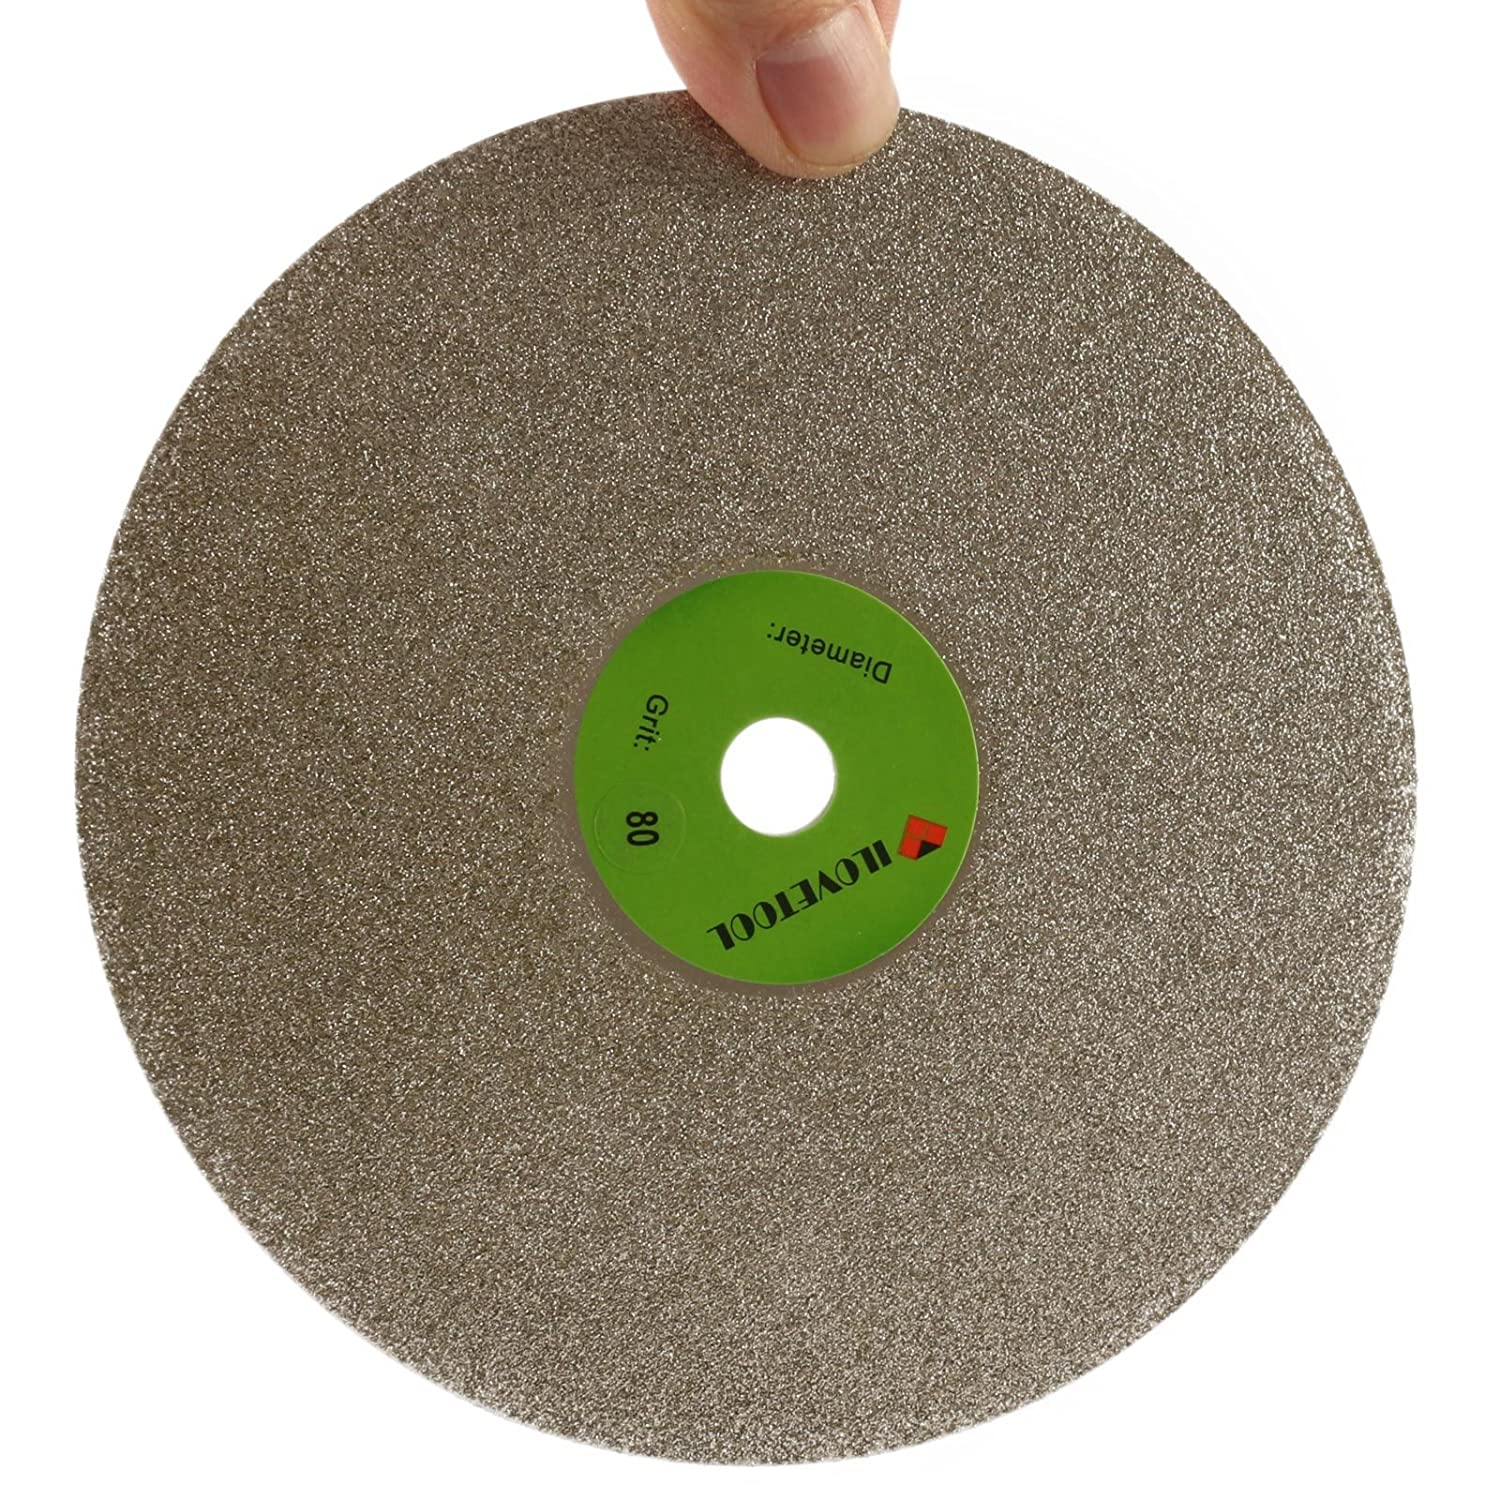 JOINER 8 inch Grinding Disc 240 Grit No Hole Diamond Wheel Lapidary Stone Tools